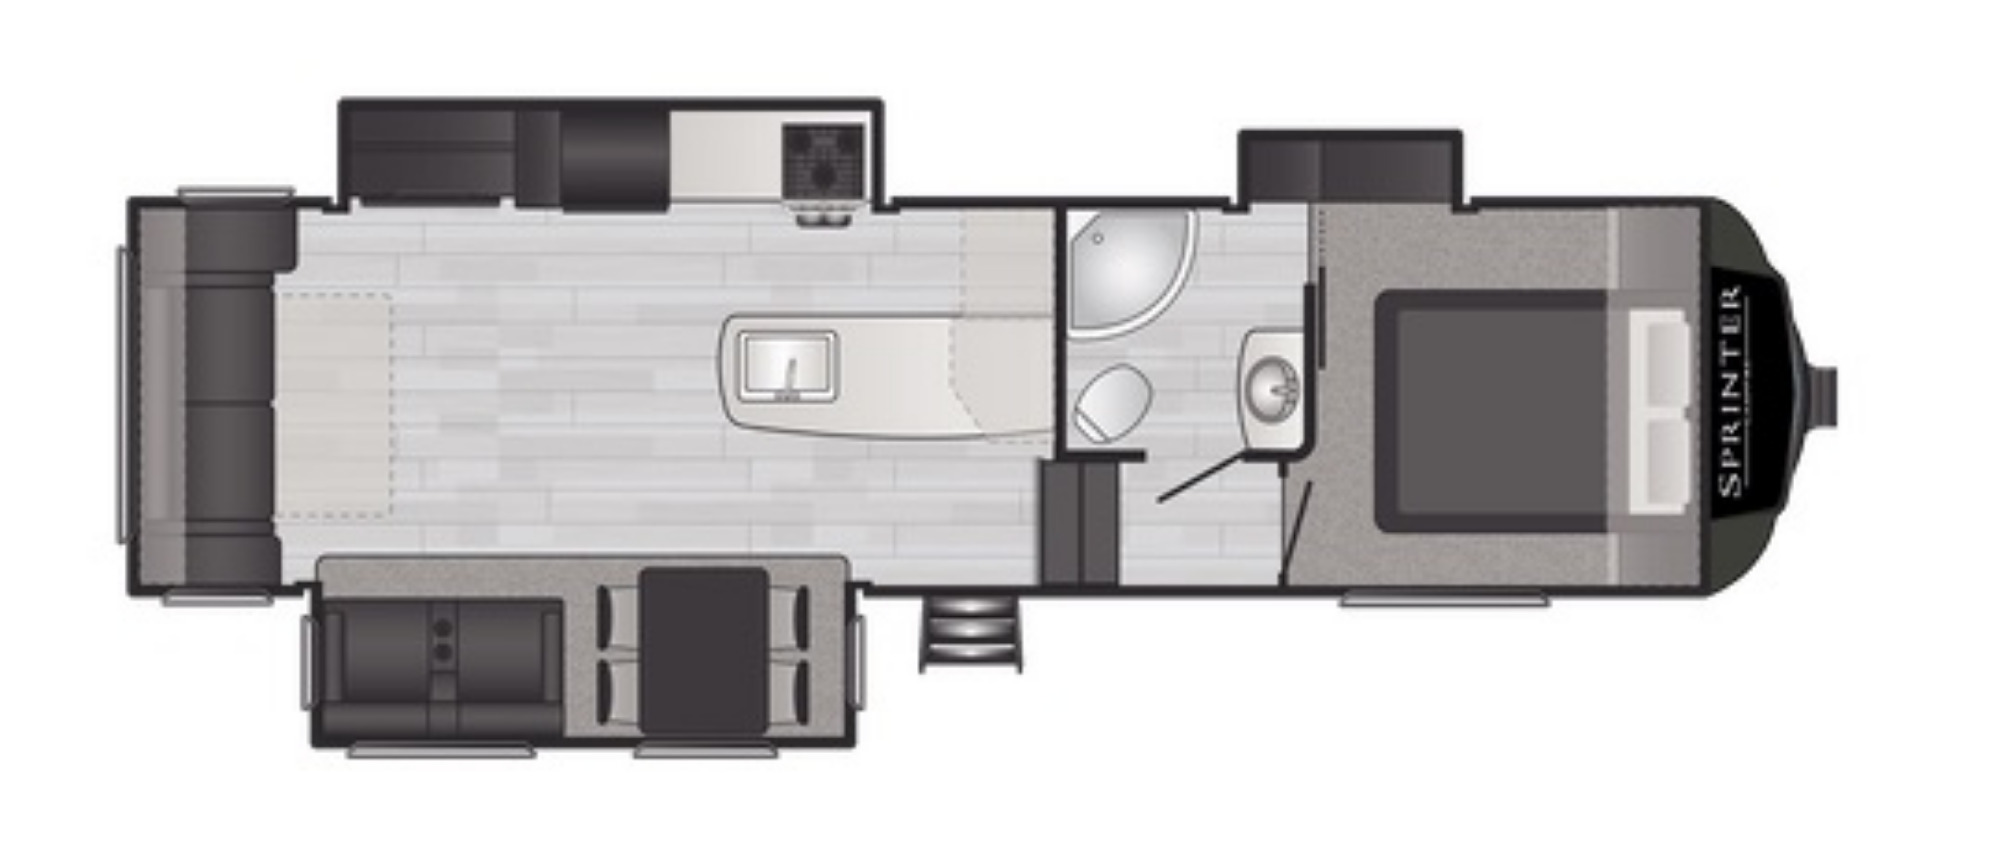 View Floor Plan for 2021 KEYSTONE SPRINTER CAMPFIRE 29RL